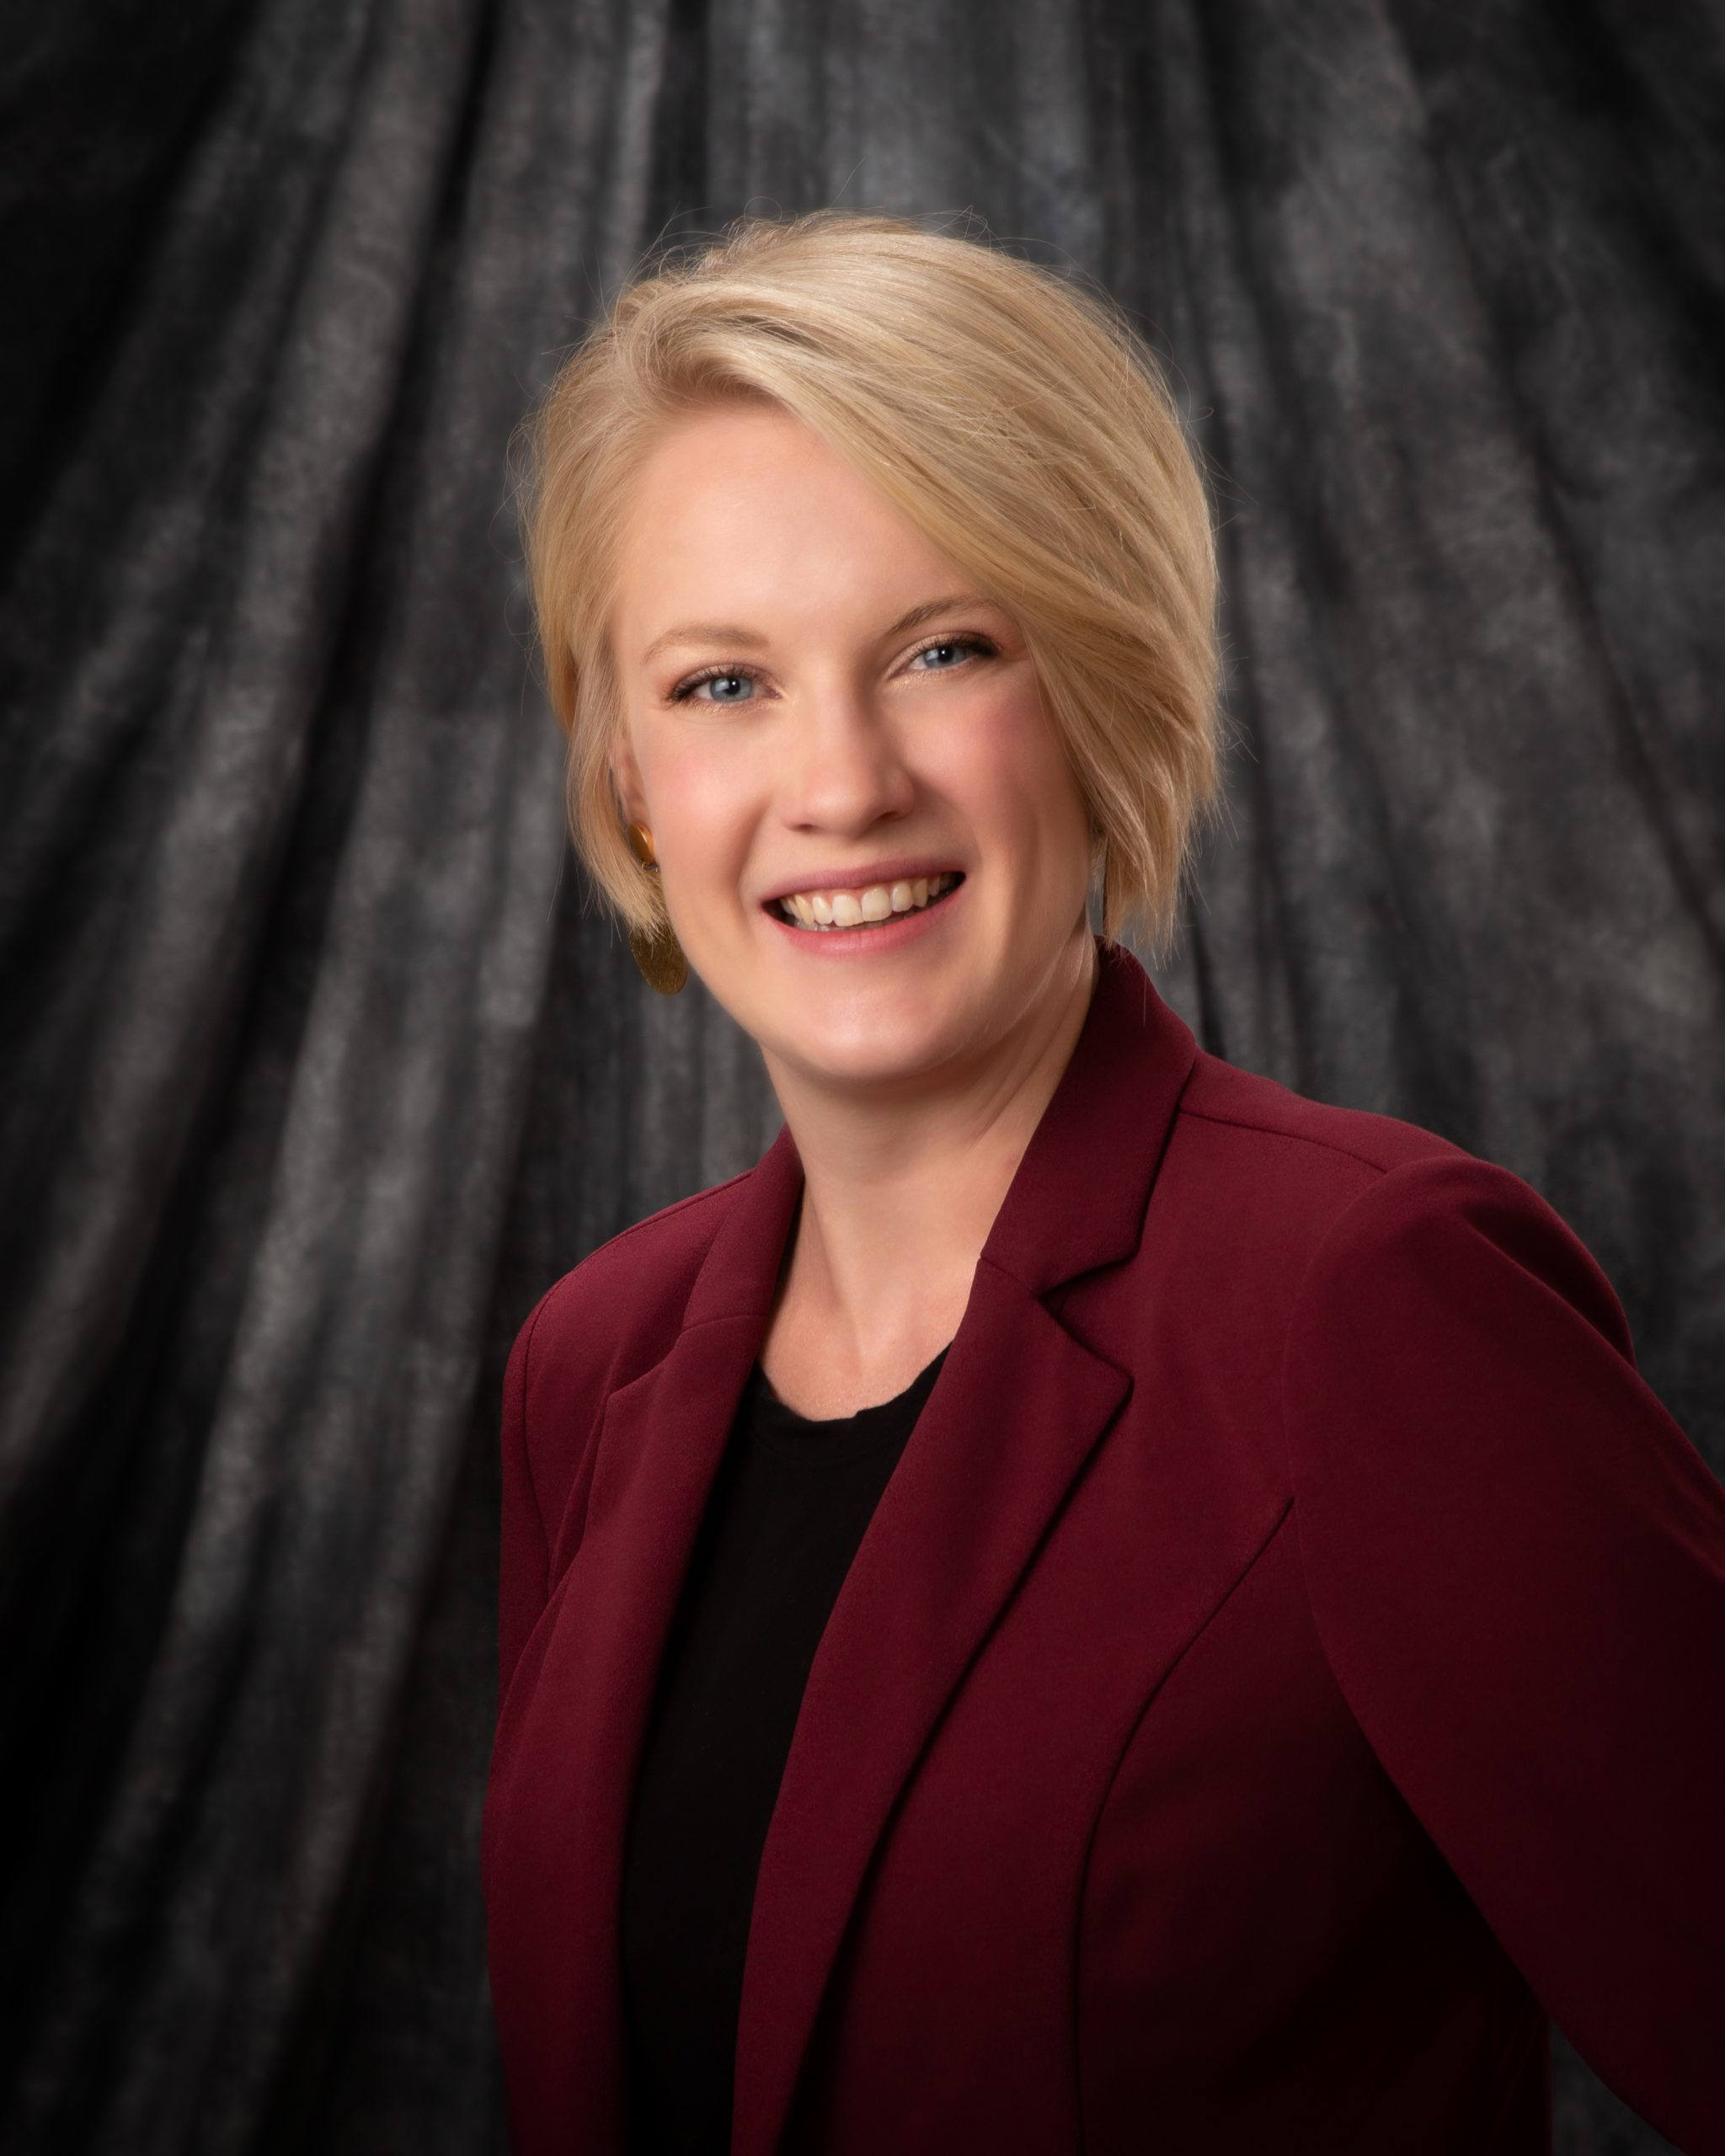 Dr. Whitney Nelson wearing a burgundy blazer and black top